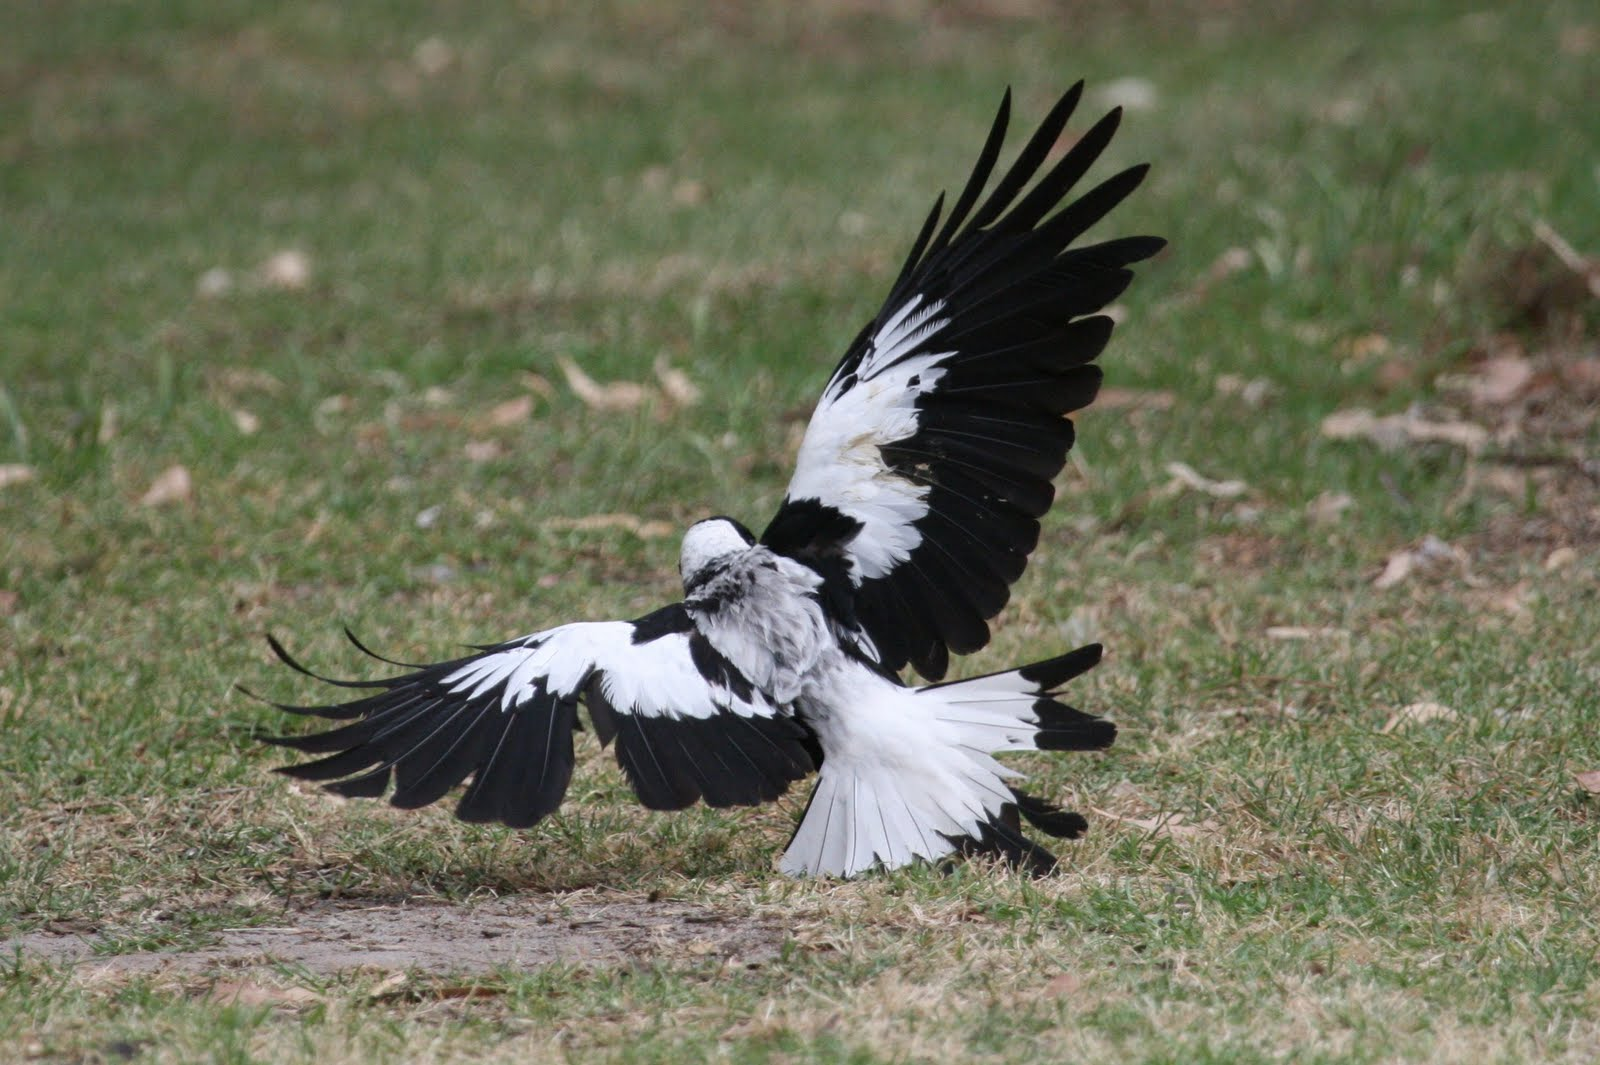 Australian Magpie preparing to fly